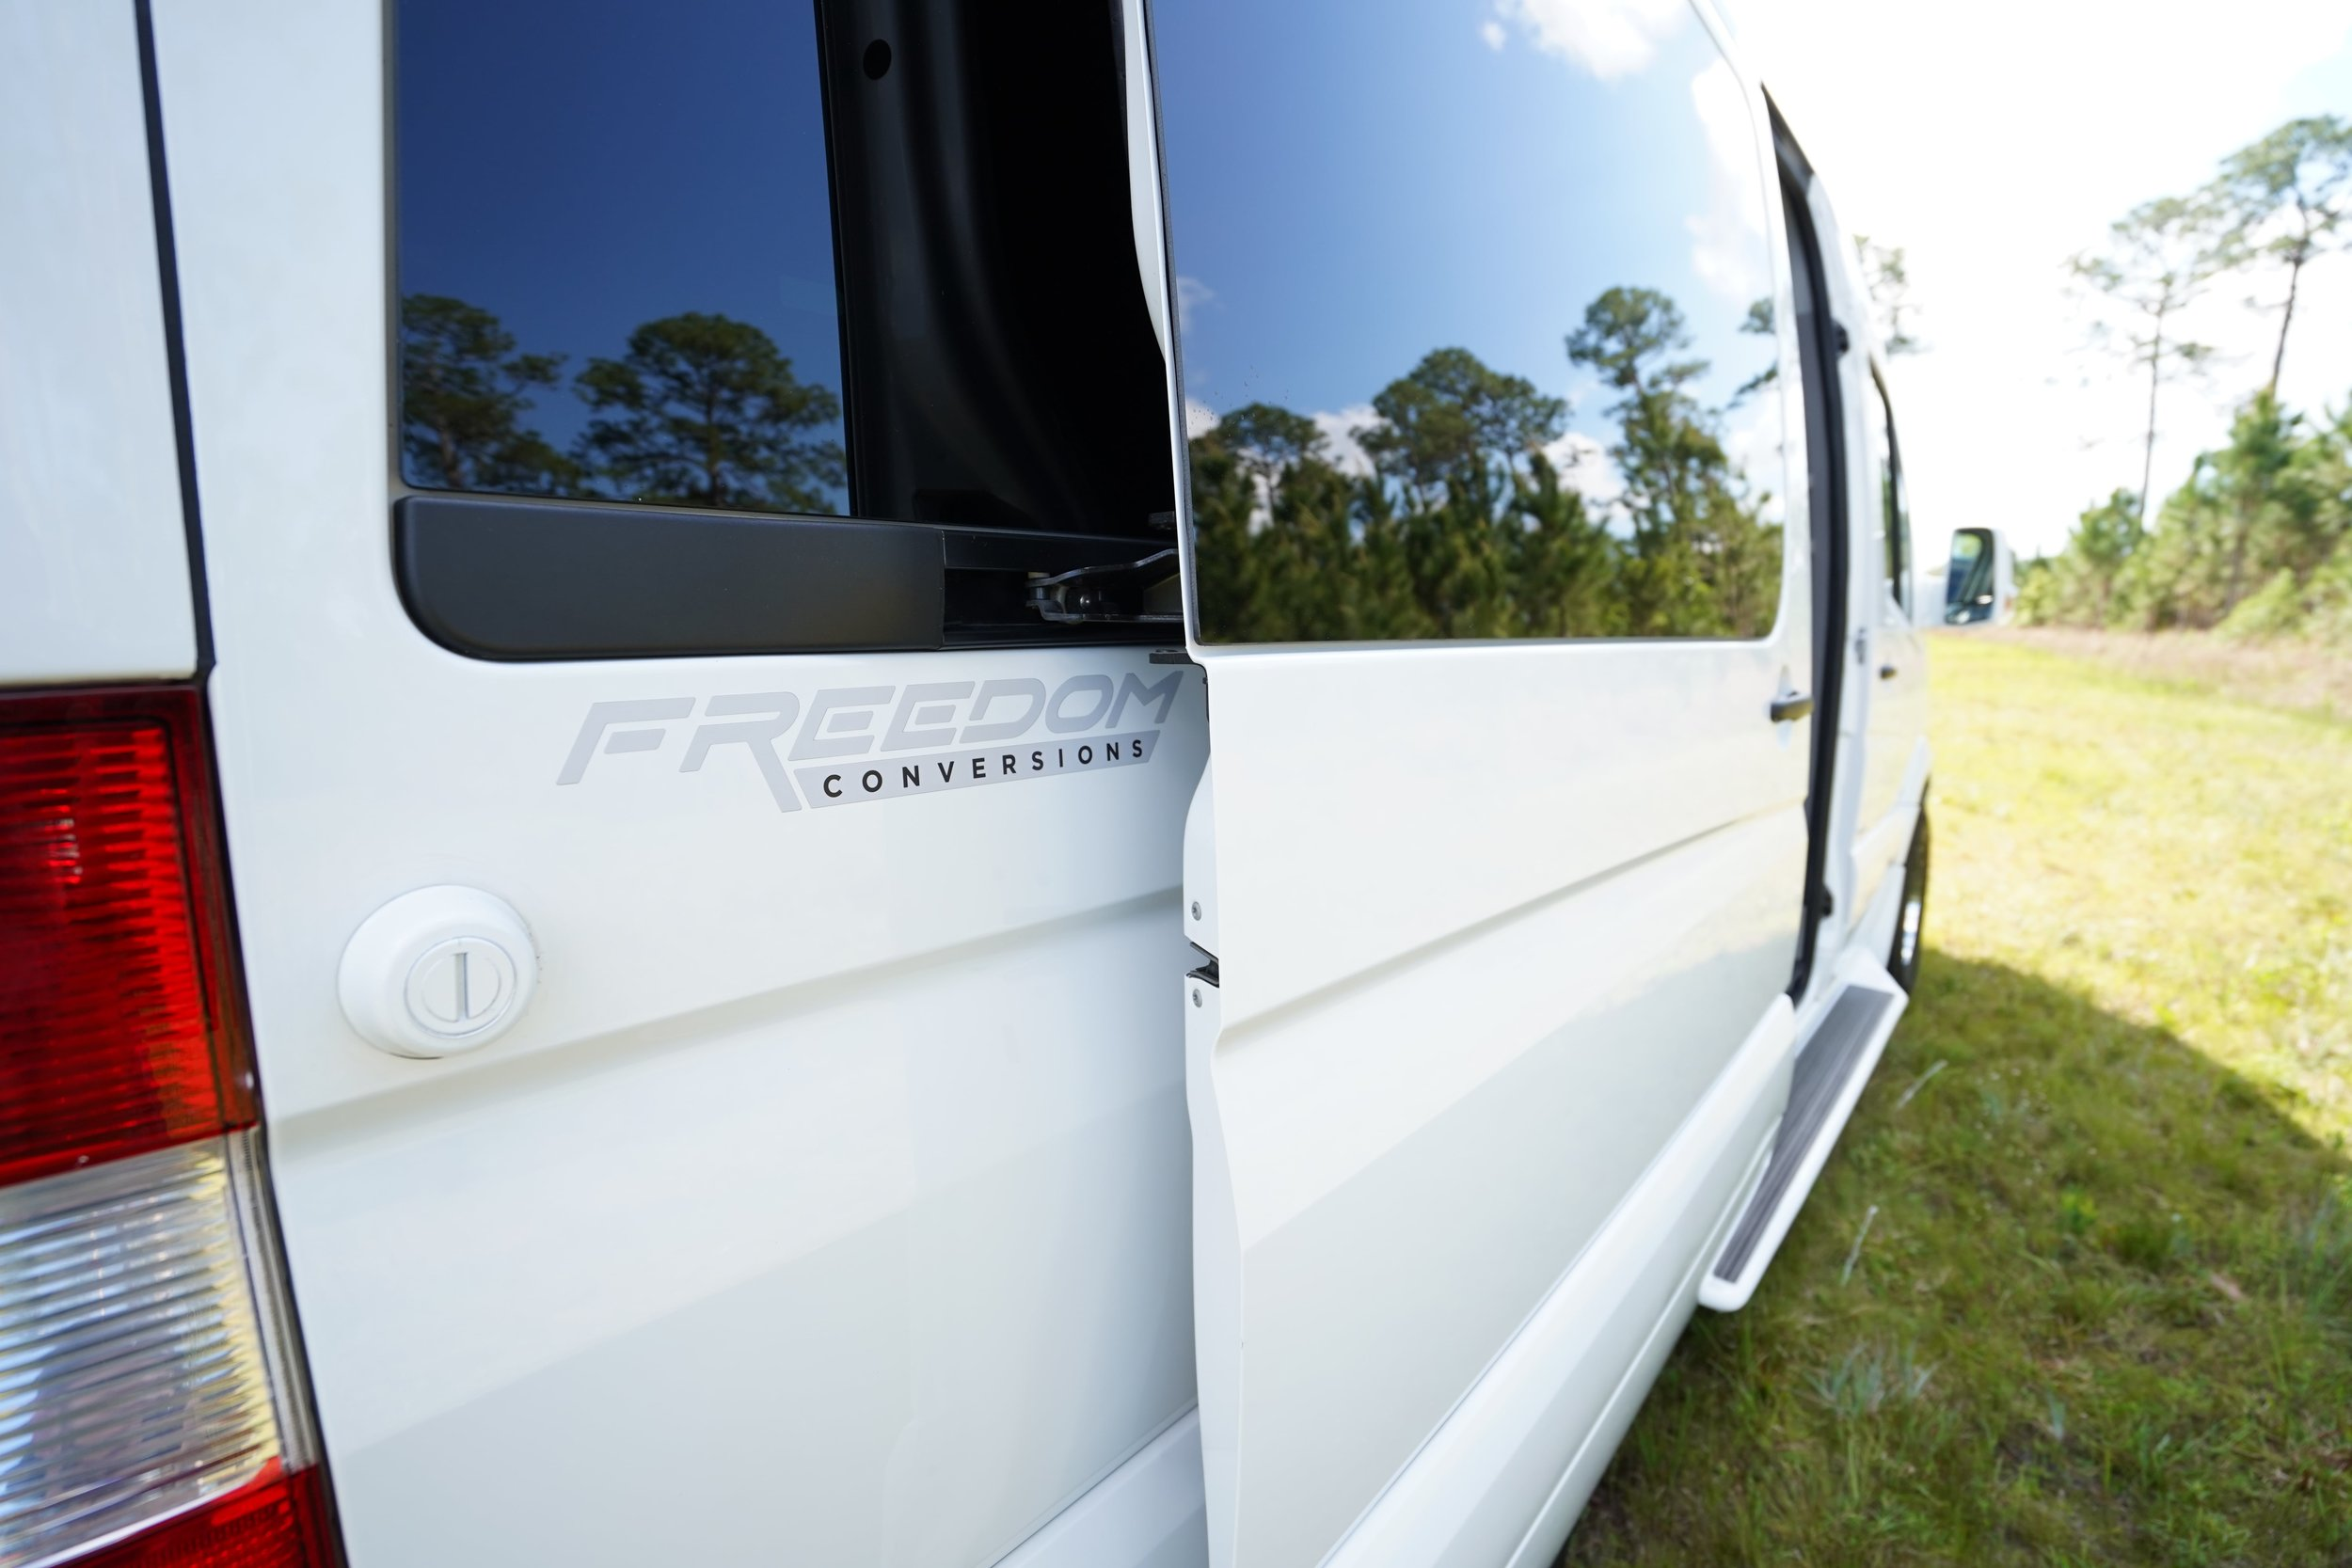 Freedom Conversions White Van 20.JPG